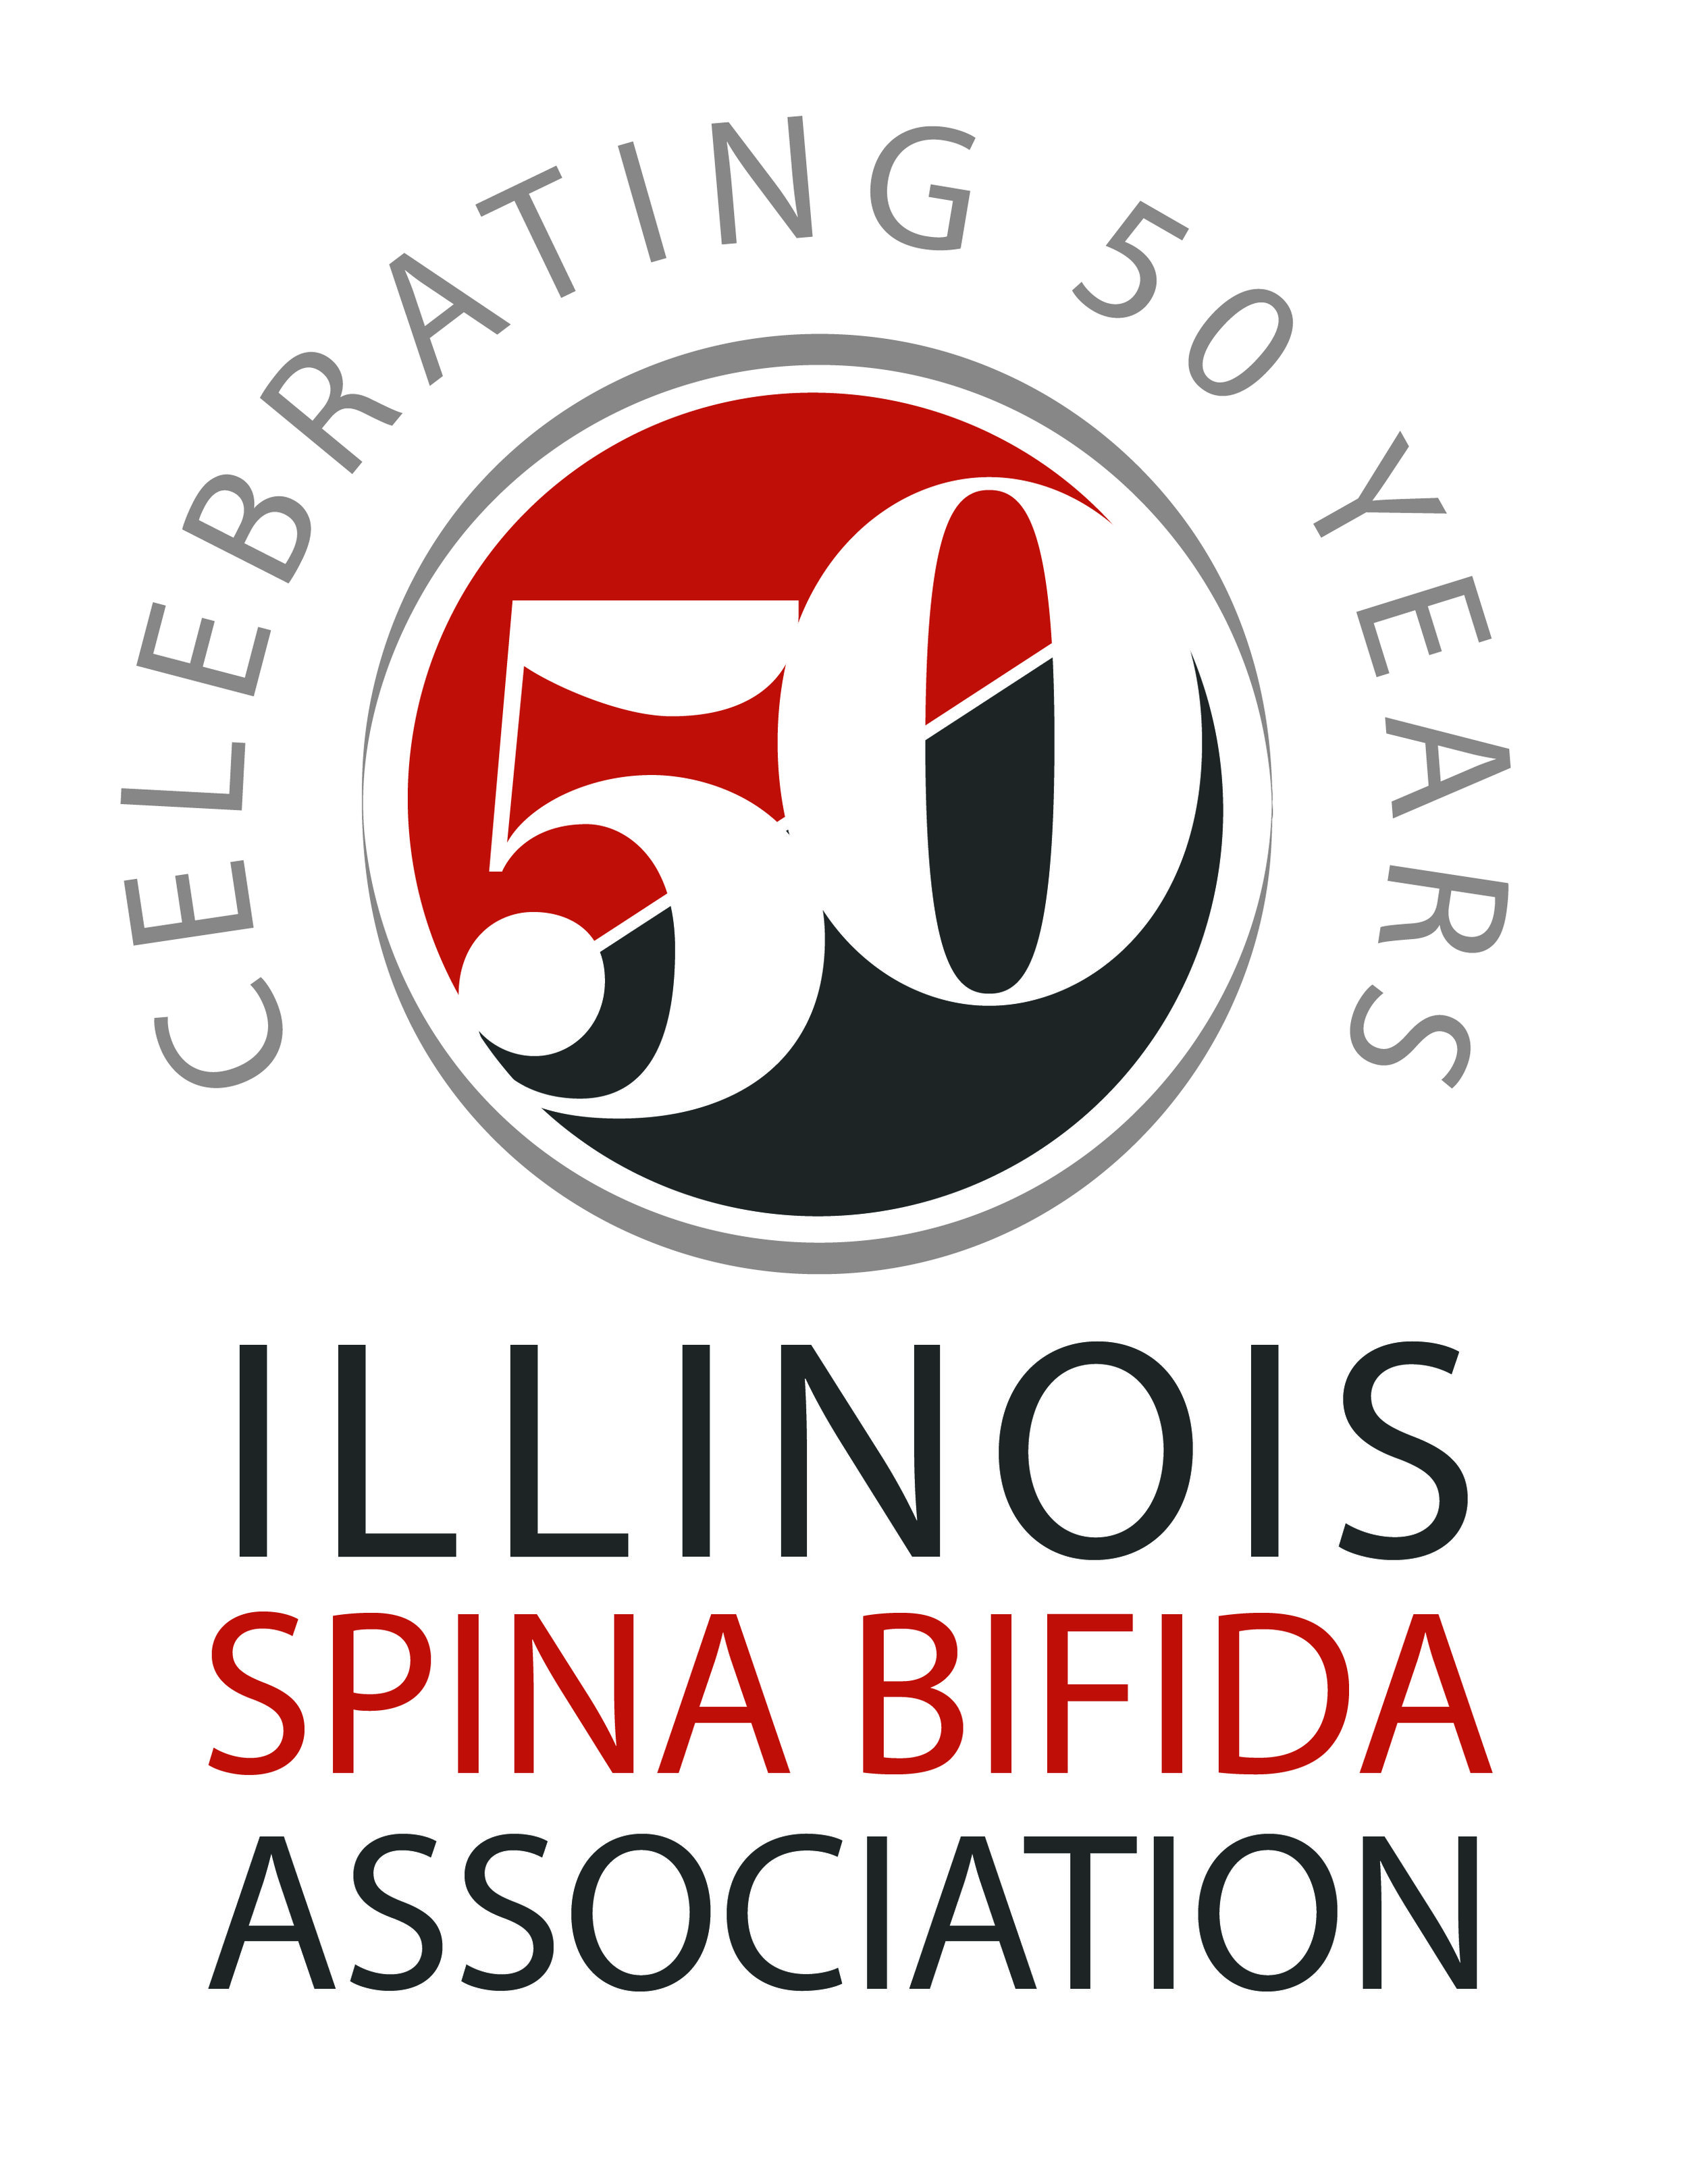 Our Mission - The Illinois Spina Bifida Association works to improve the quality of life of children, adults, and families living with spina bifida.About Spina BifidaSpina bifida is a lifelong neurological condition that affects the spine and is usually apparent at birth.Spina bifida can cause physical and developmental disabilities that range from mild to severe.Spina bifida is a complex condition that, for many, requires specialized medical care and daily attention to health and wellness.More